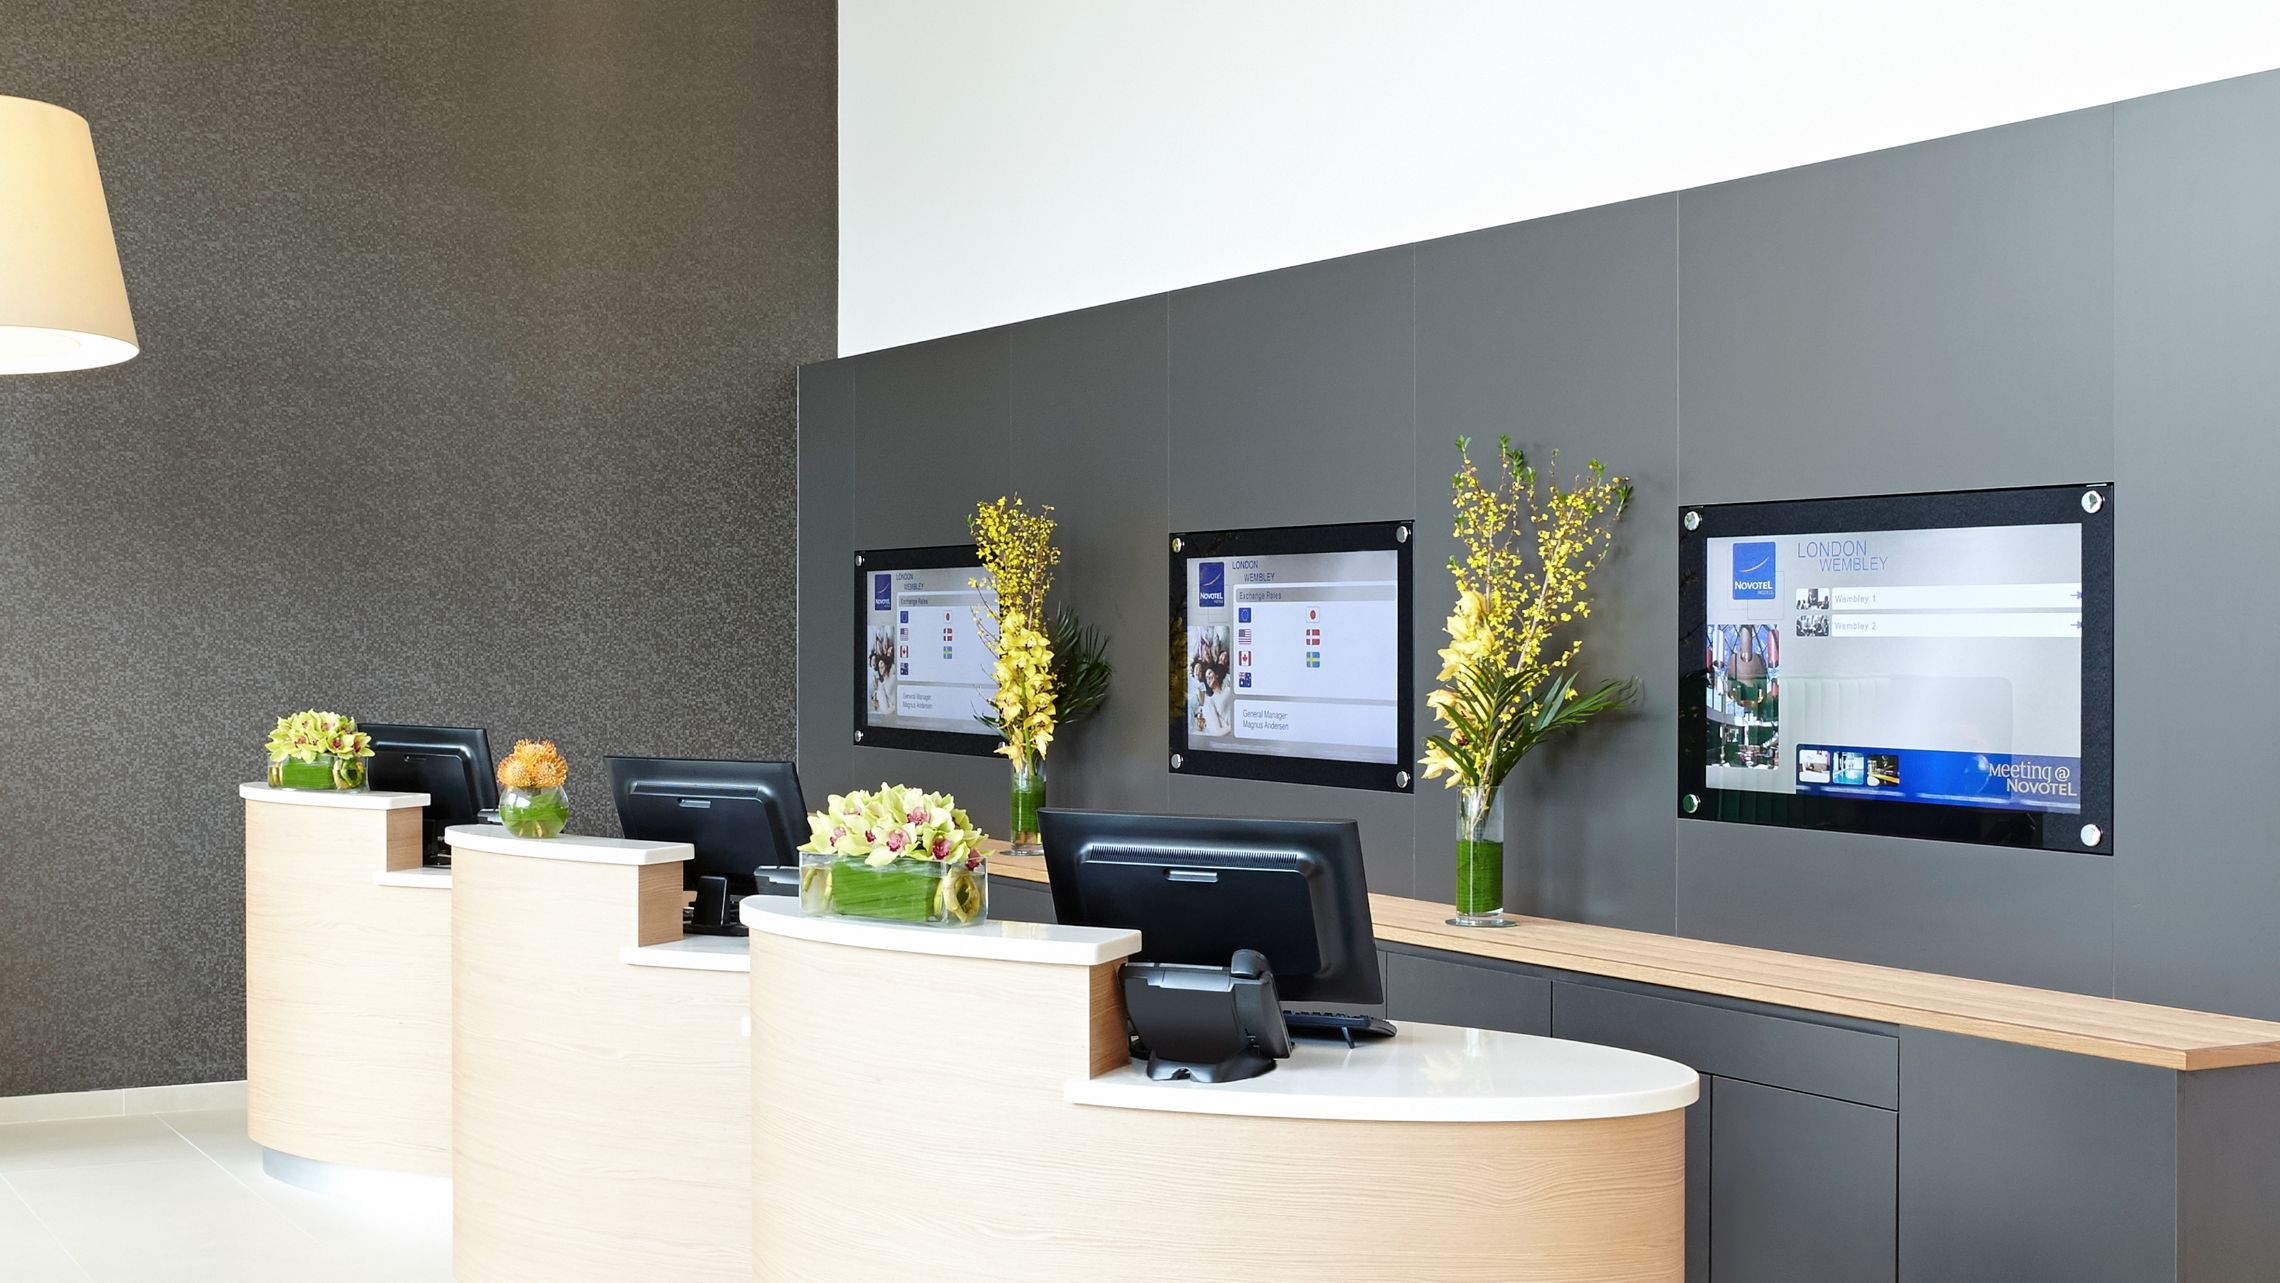 Reception of the Novotel Property Development in London